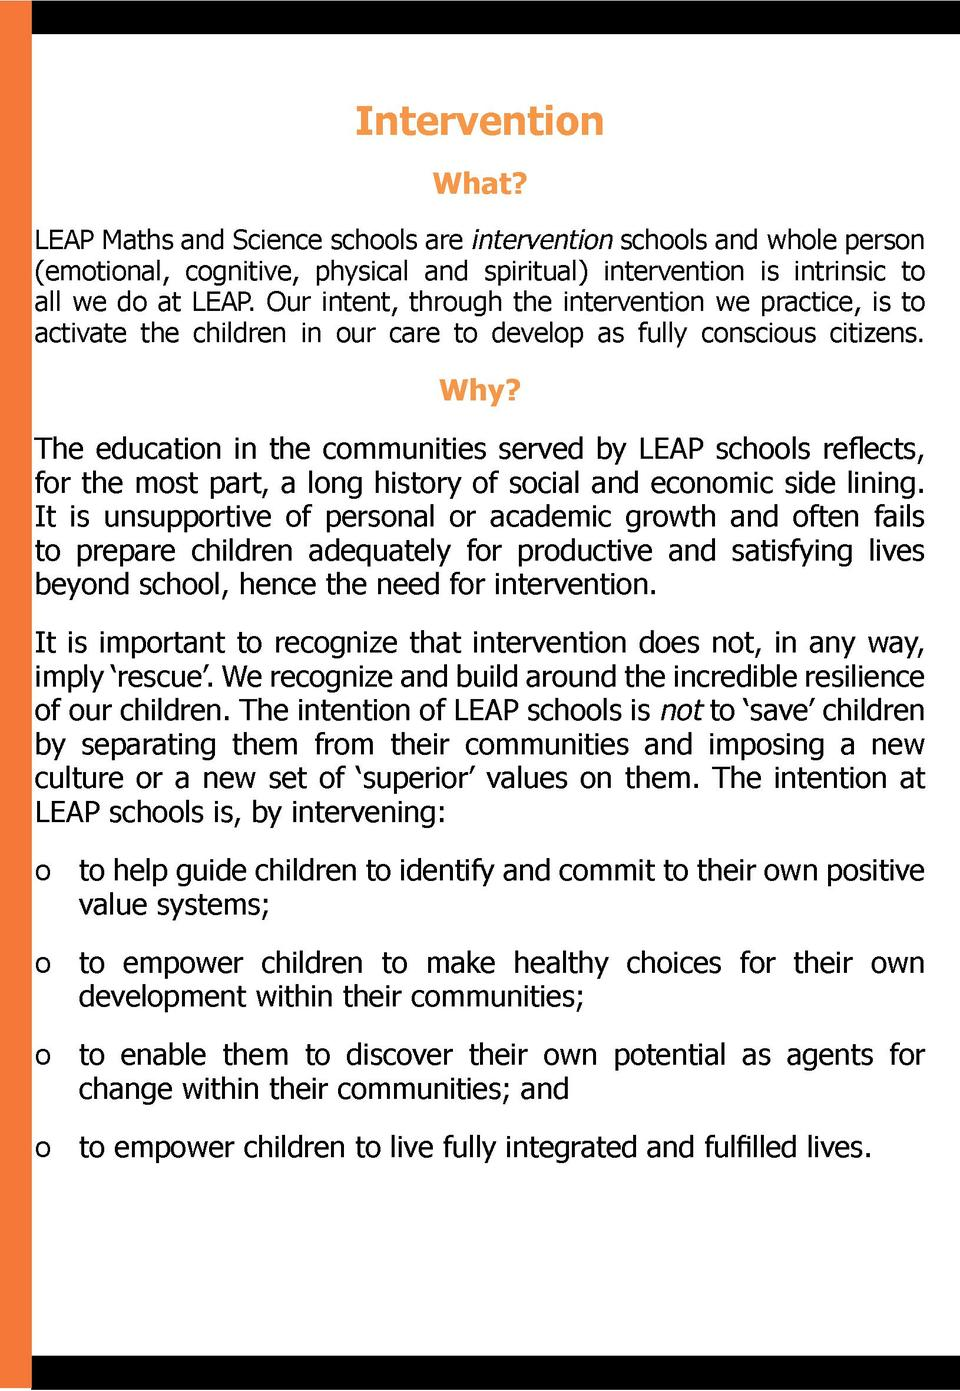 Intervention What  LEAP Maths and Science schools are intervention schools and whole person  emotional, cognitive, physica...